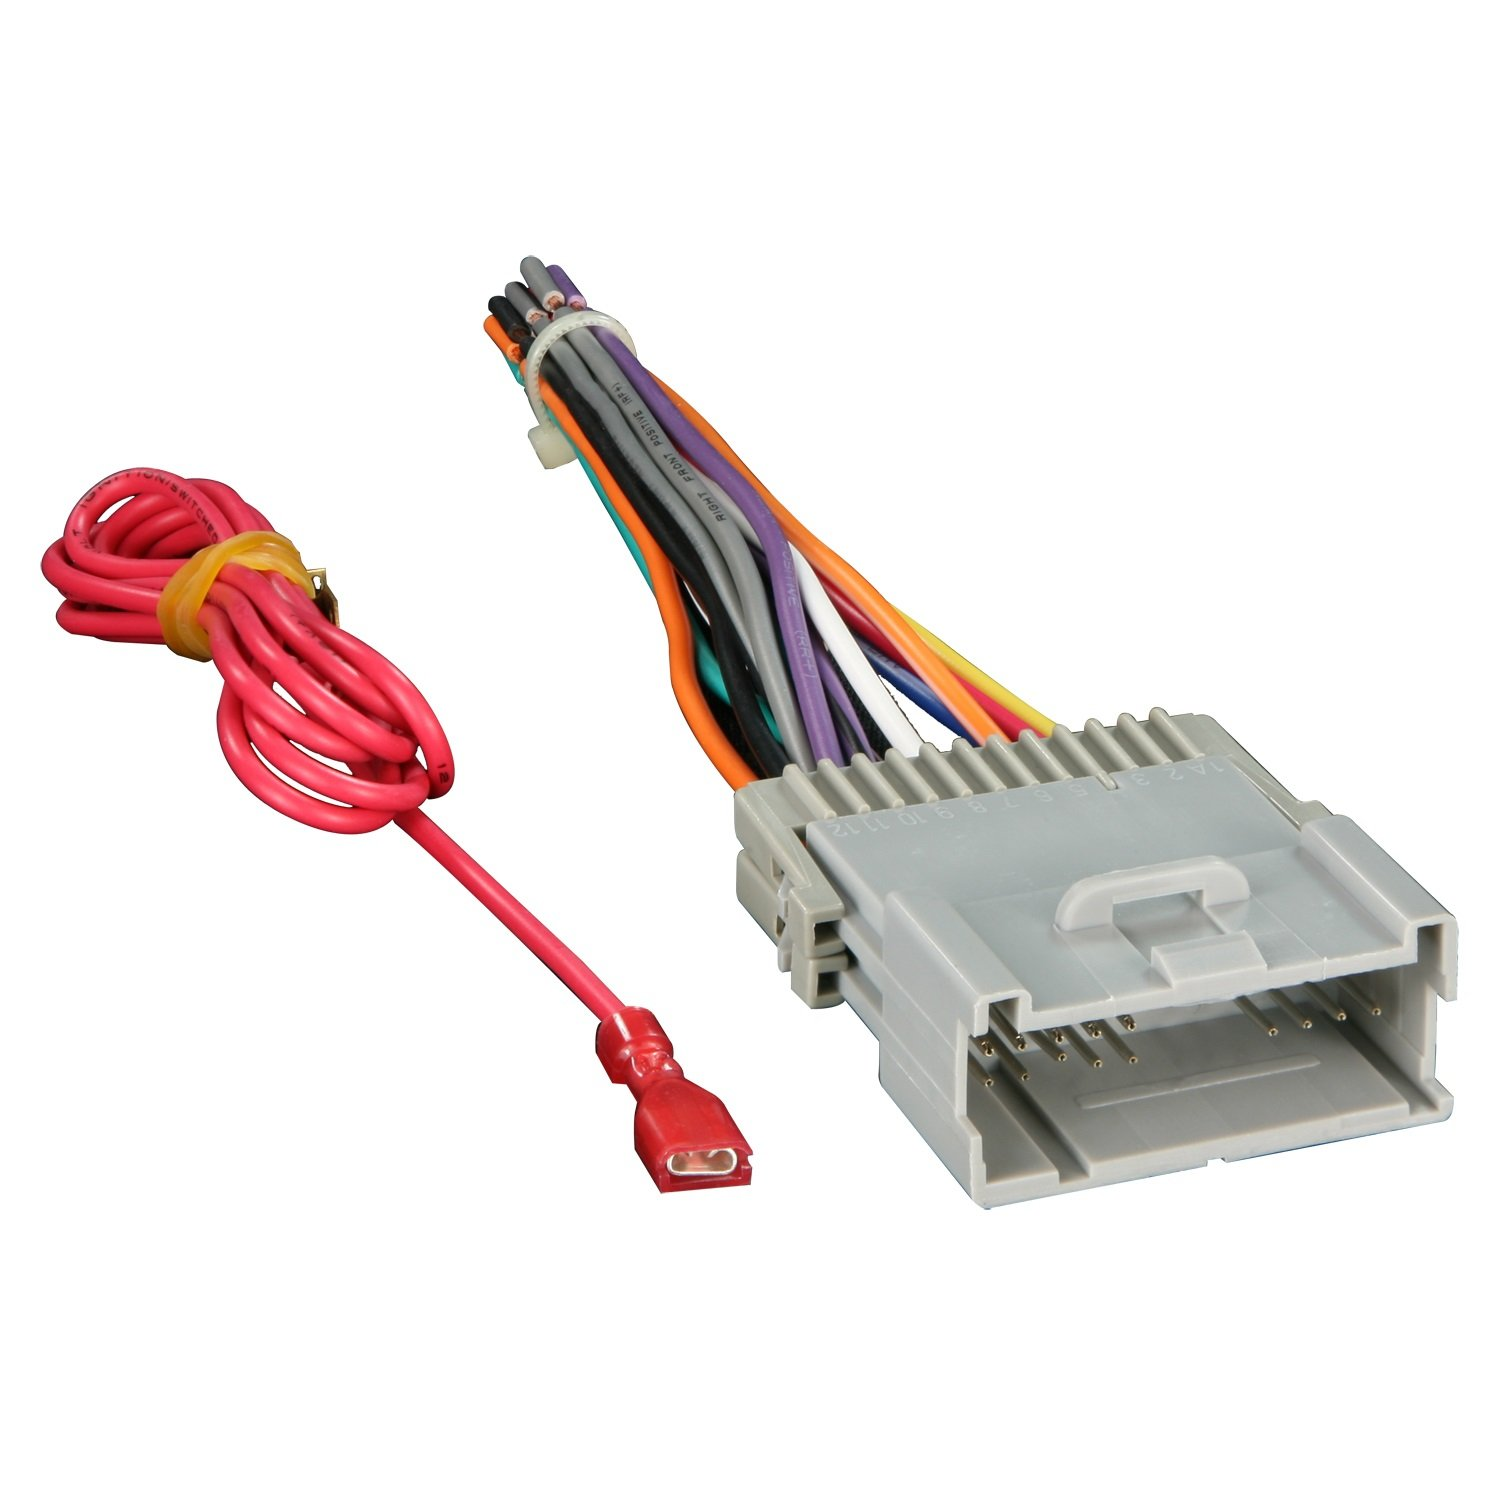 61eewxp9orL._SL1500_ amazon com metra 70 2003 radio wiring harness for gm 98 08 metra smart cable wire harness adapter at mifinder.co